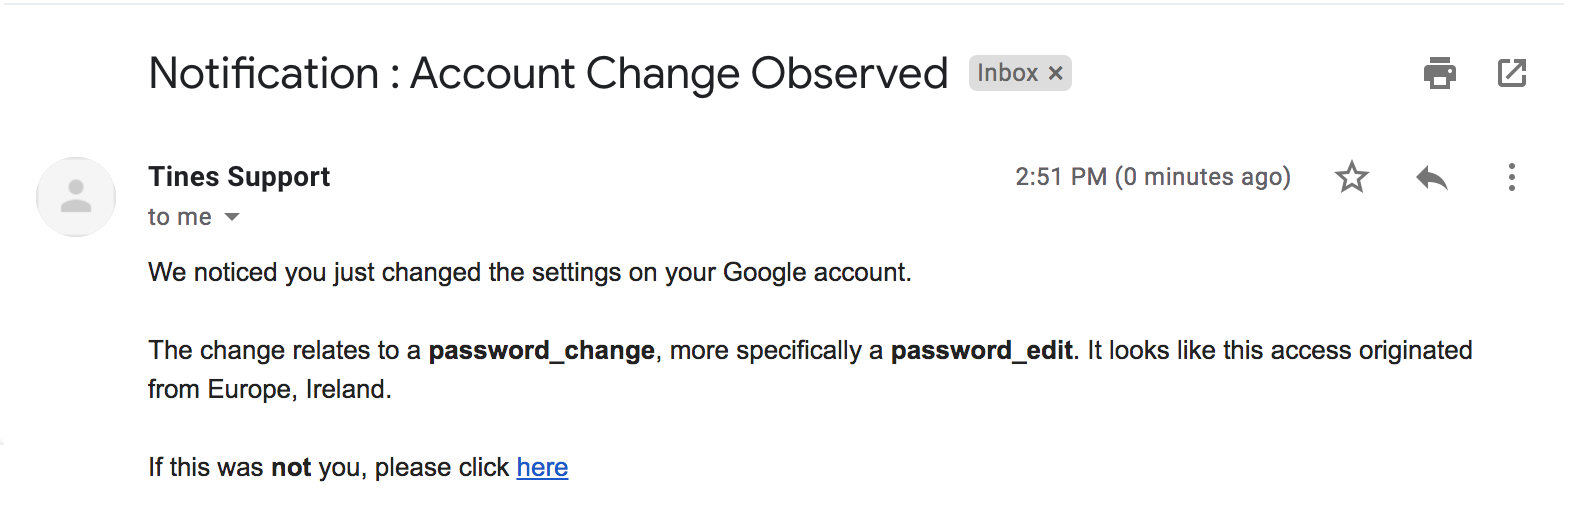 Tines: Email to a user to confirm or deny whether the recent account change was them.